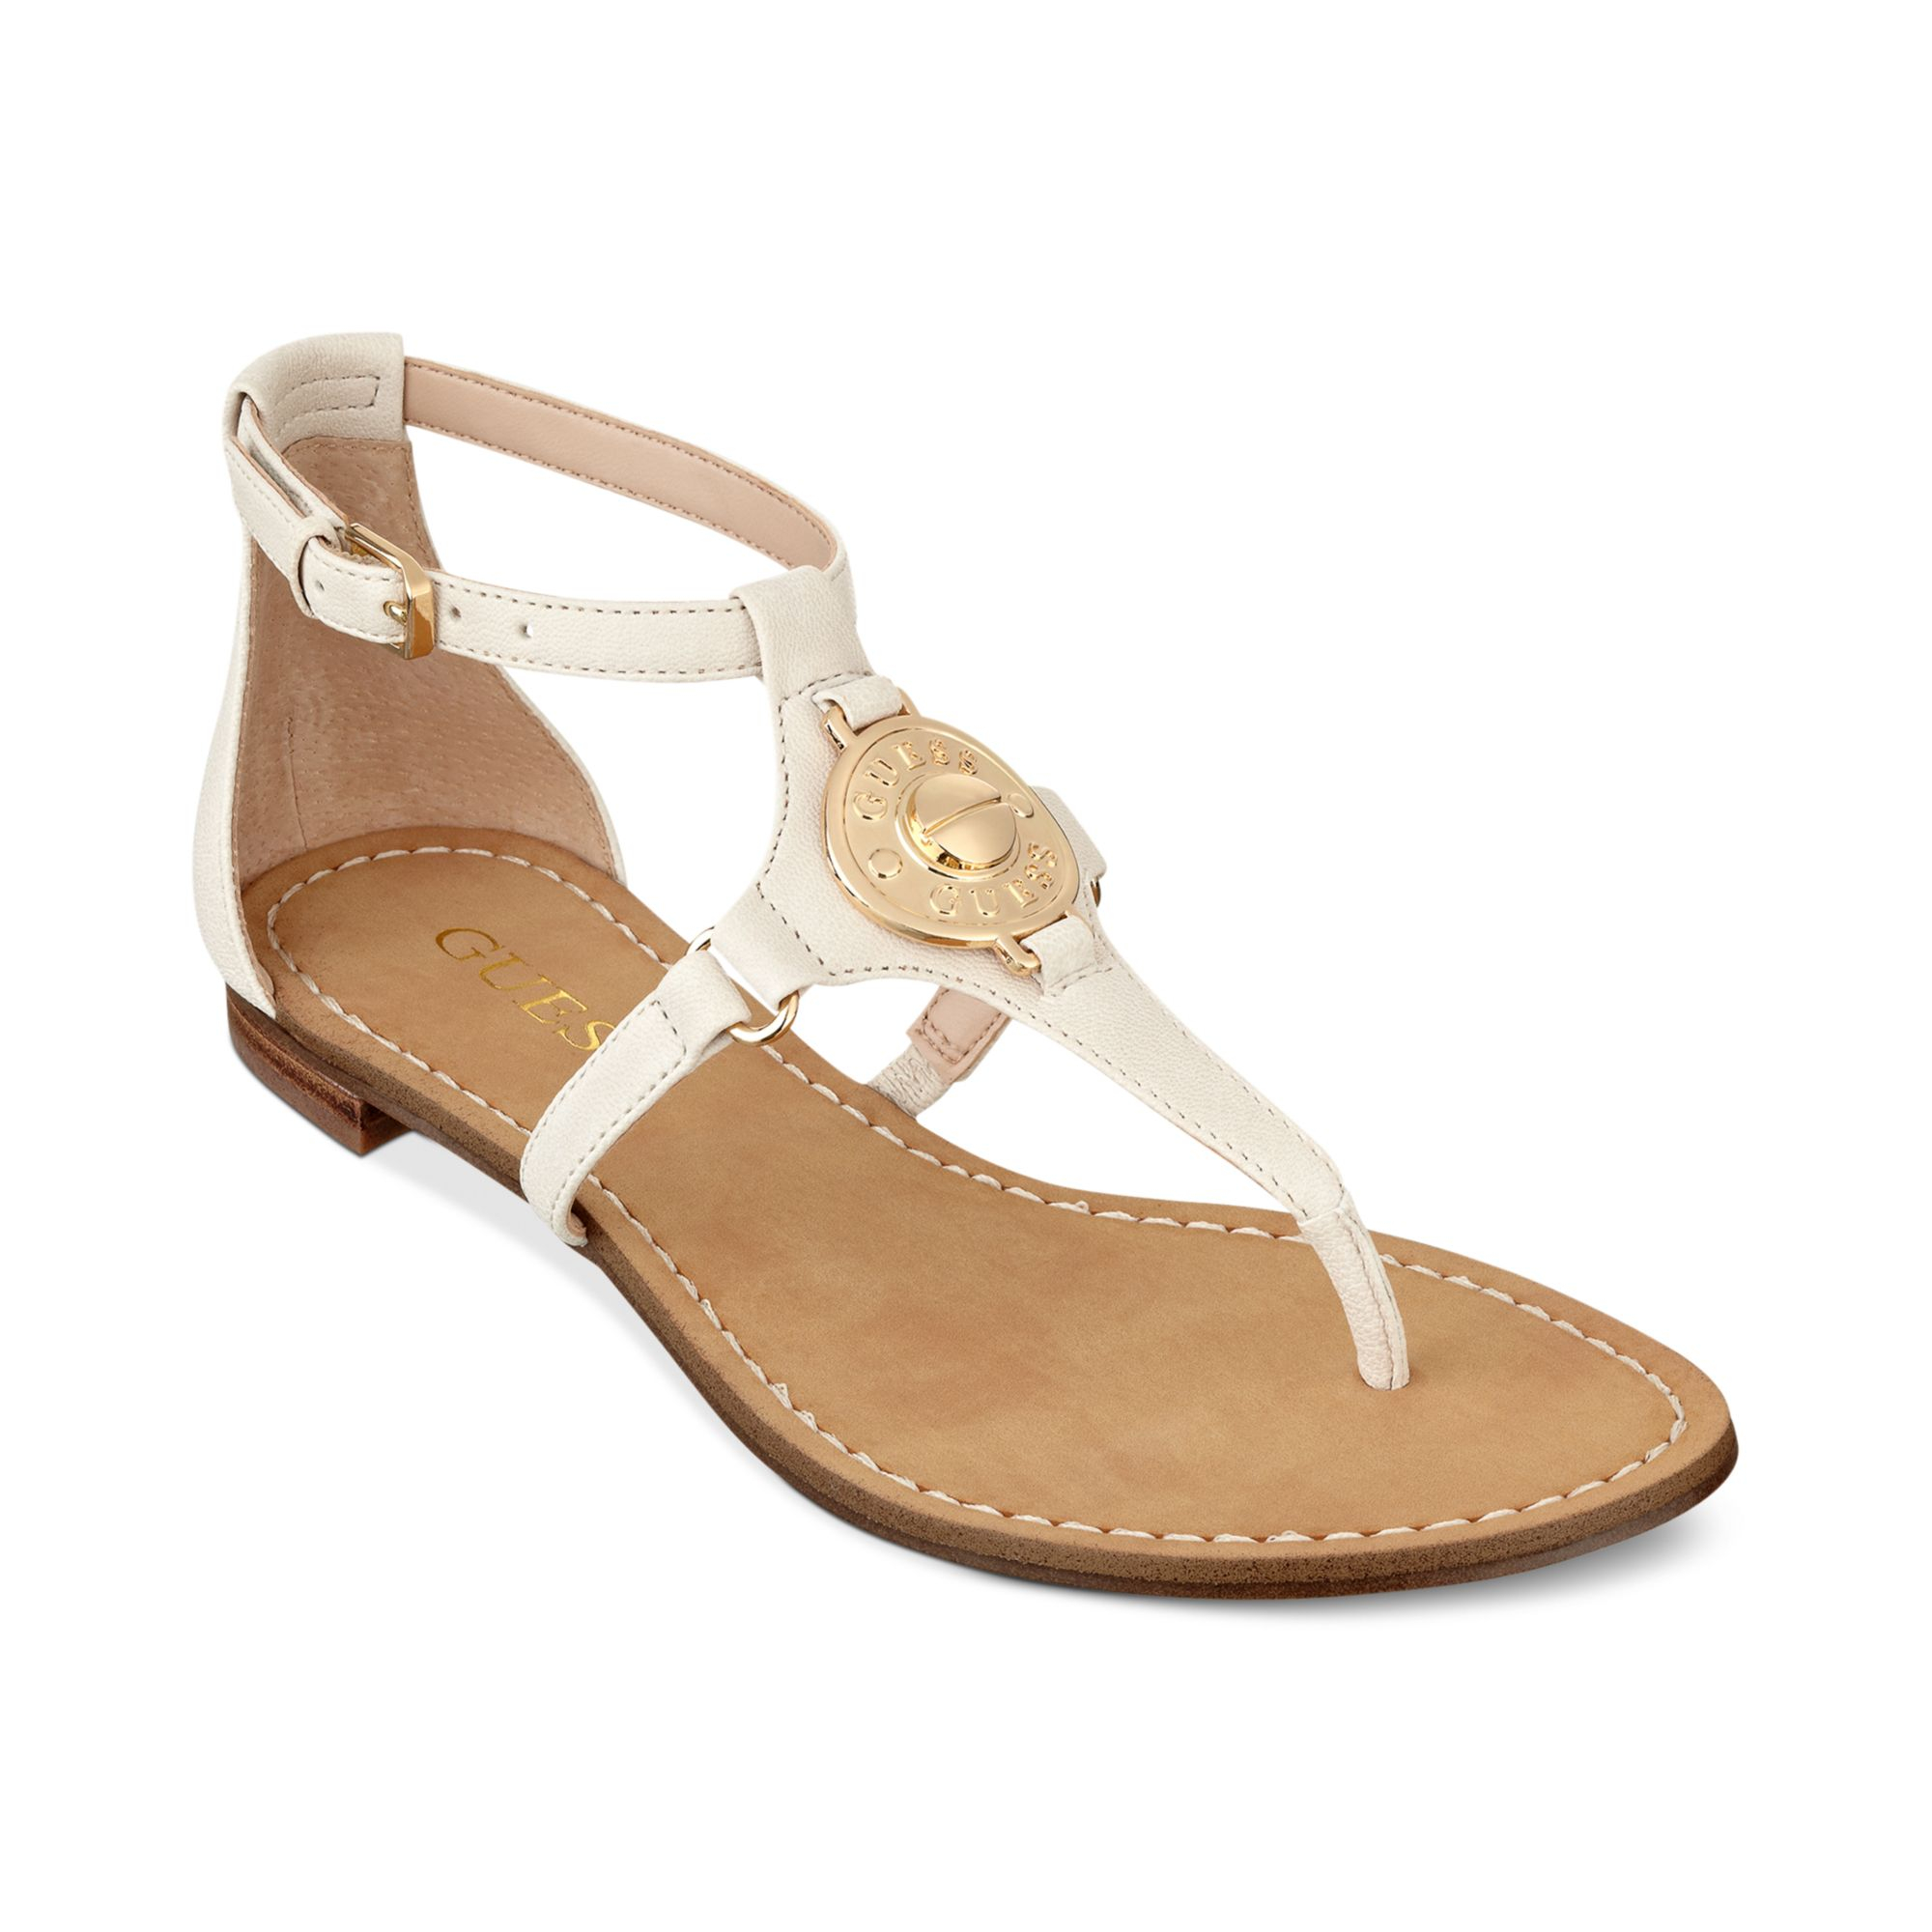 75c5cedeb04 Guess Sandals Flats For Women